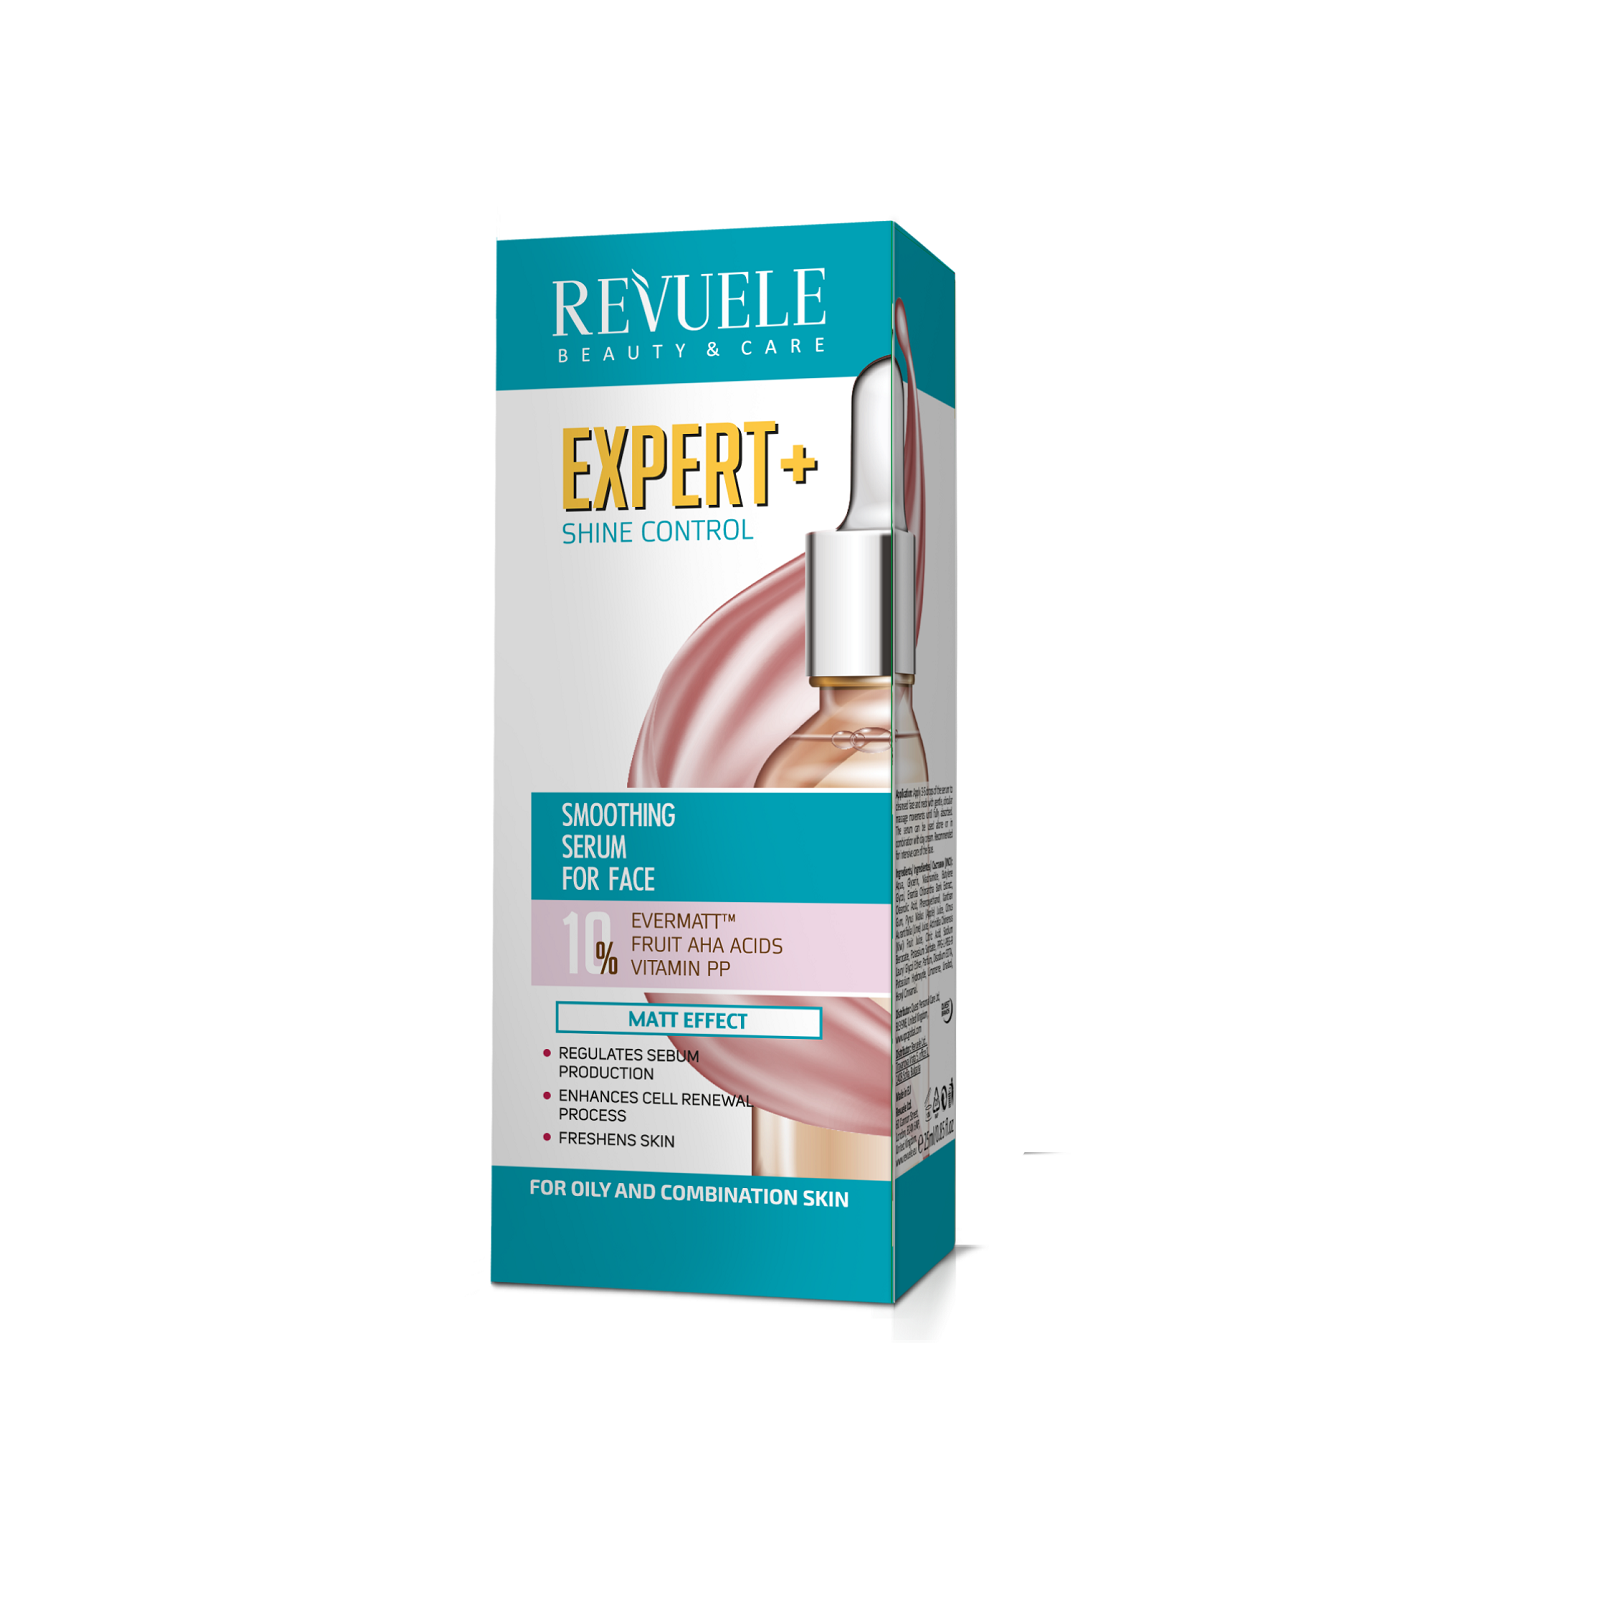 Revuele Smoothing Serum For Face